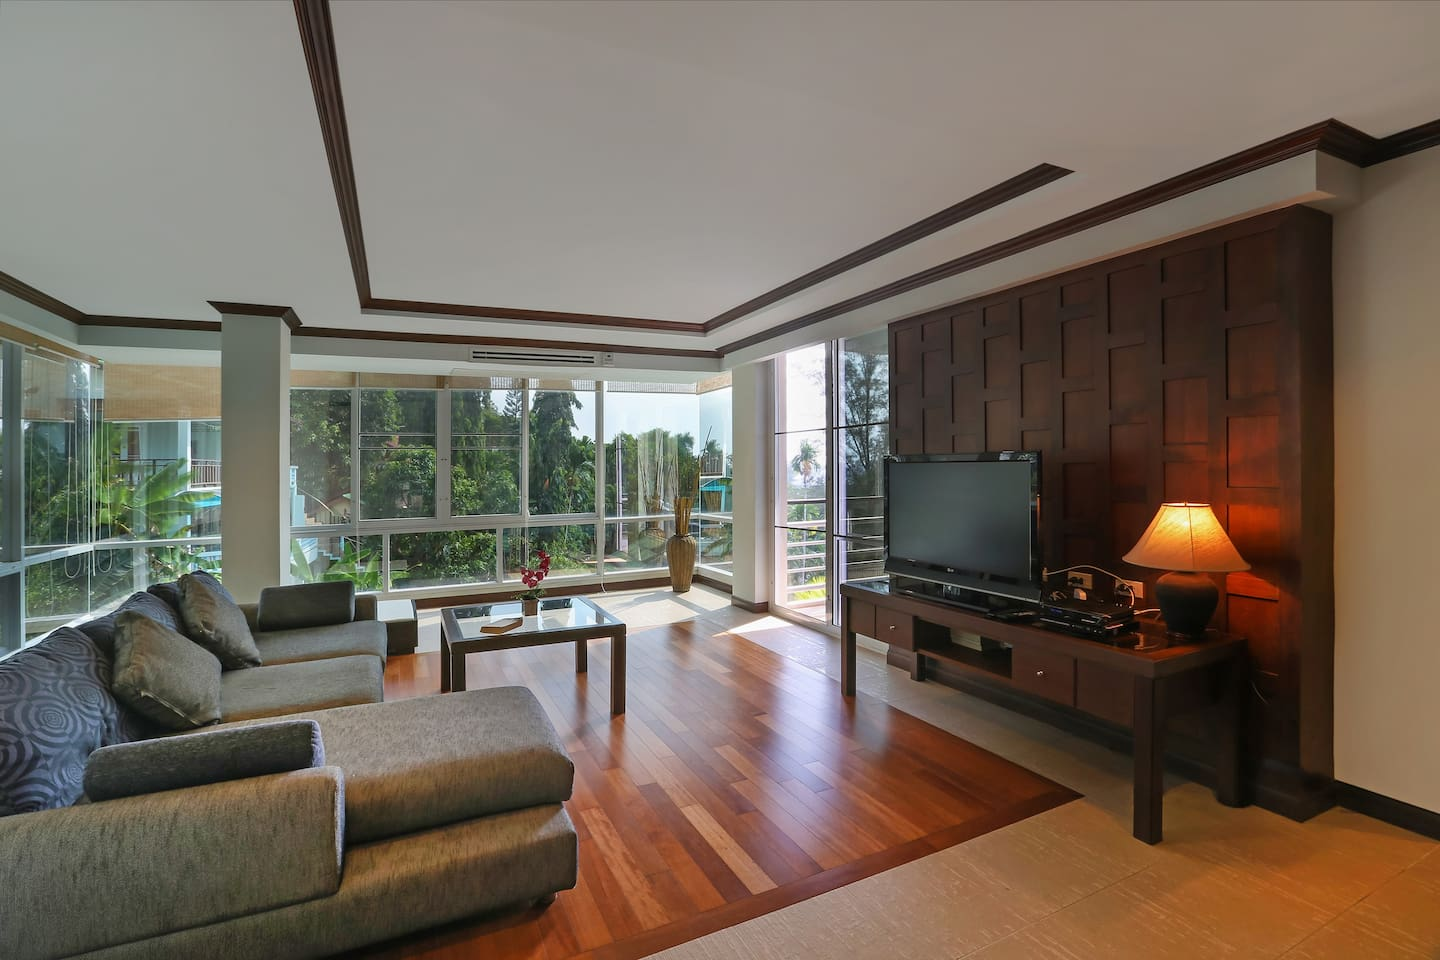 Living room with floor to ceiling windows on 3 sides and double sofabed